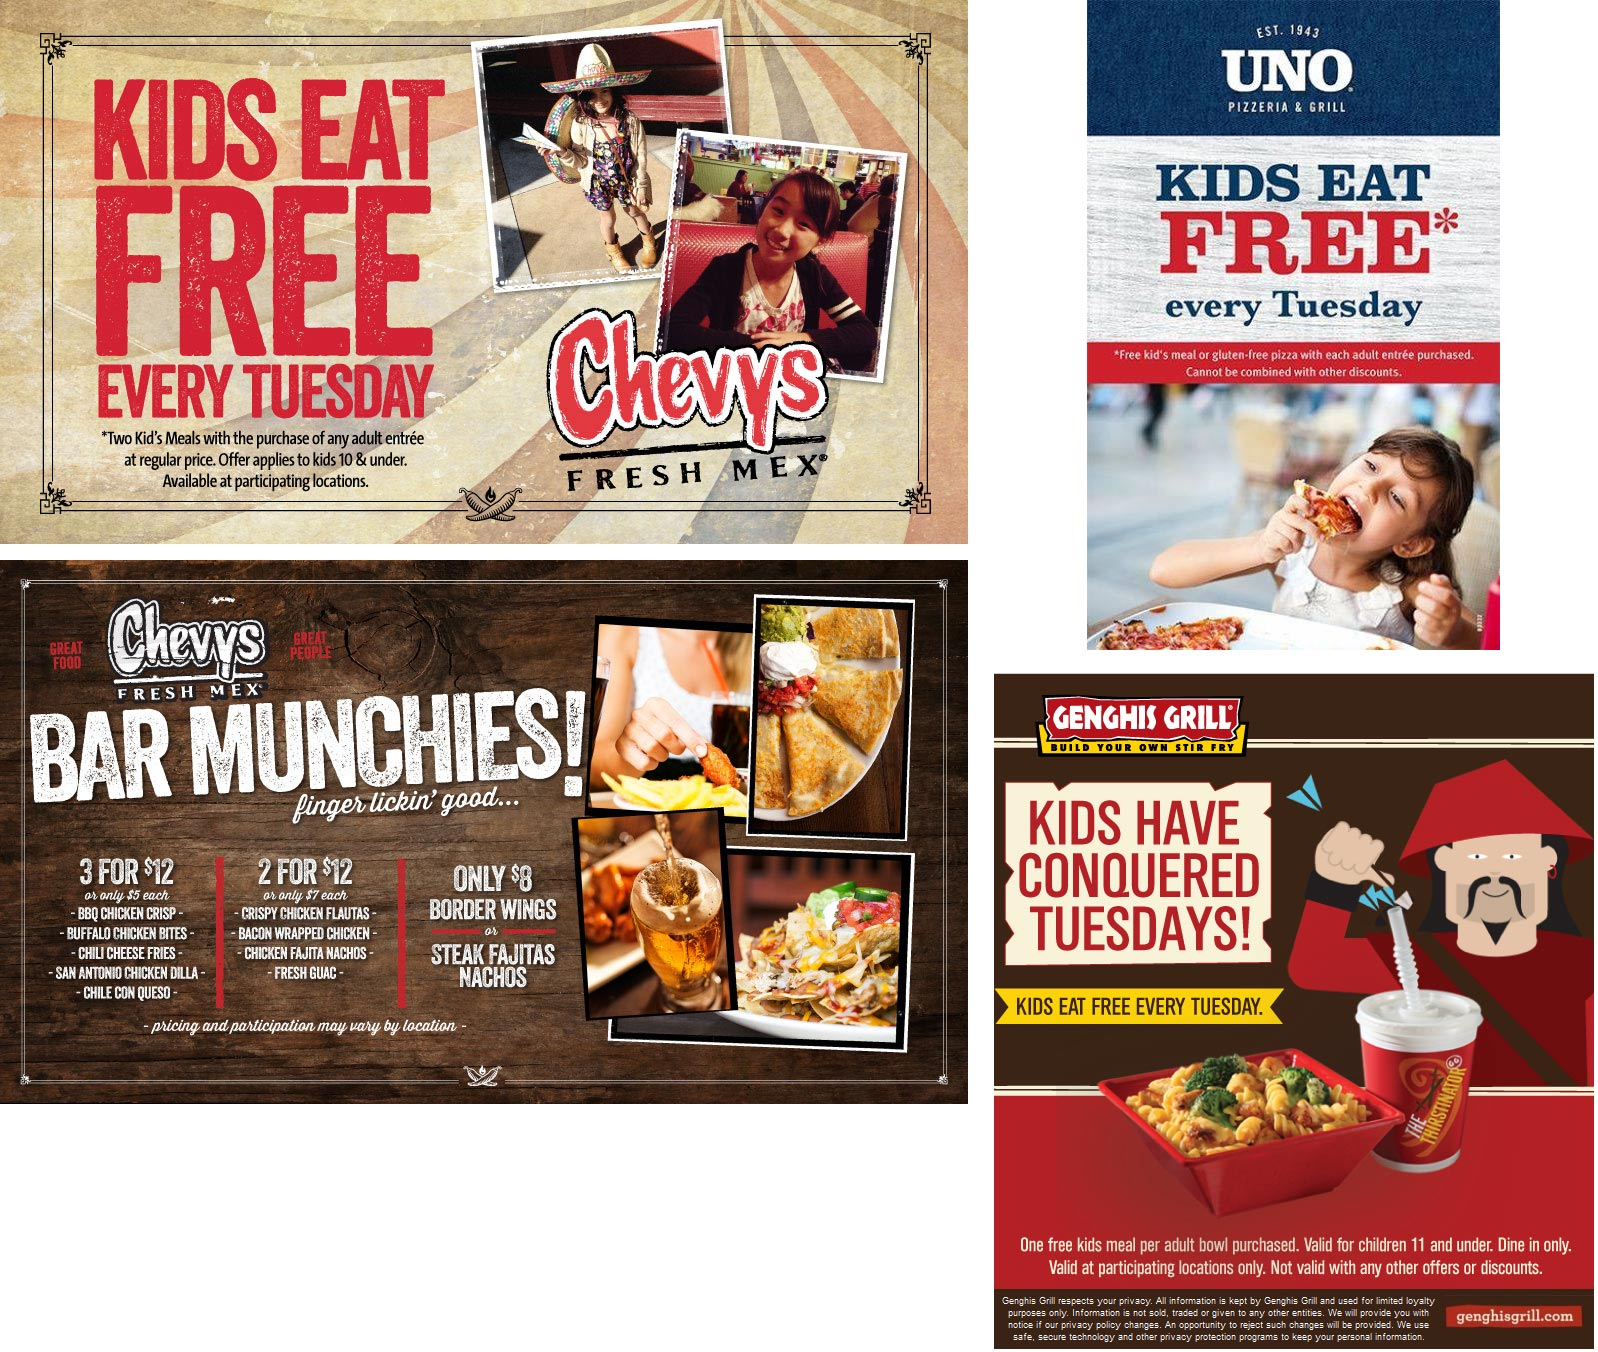 Chevys Fresh Mex Coupon August 2017 Kids eat free today at Chevys Fresh Mex, Genghis Grill & Uno Pizzeria Grill